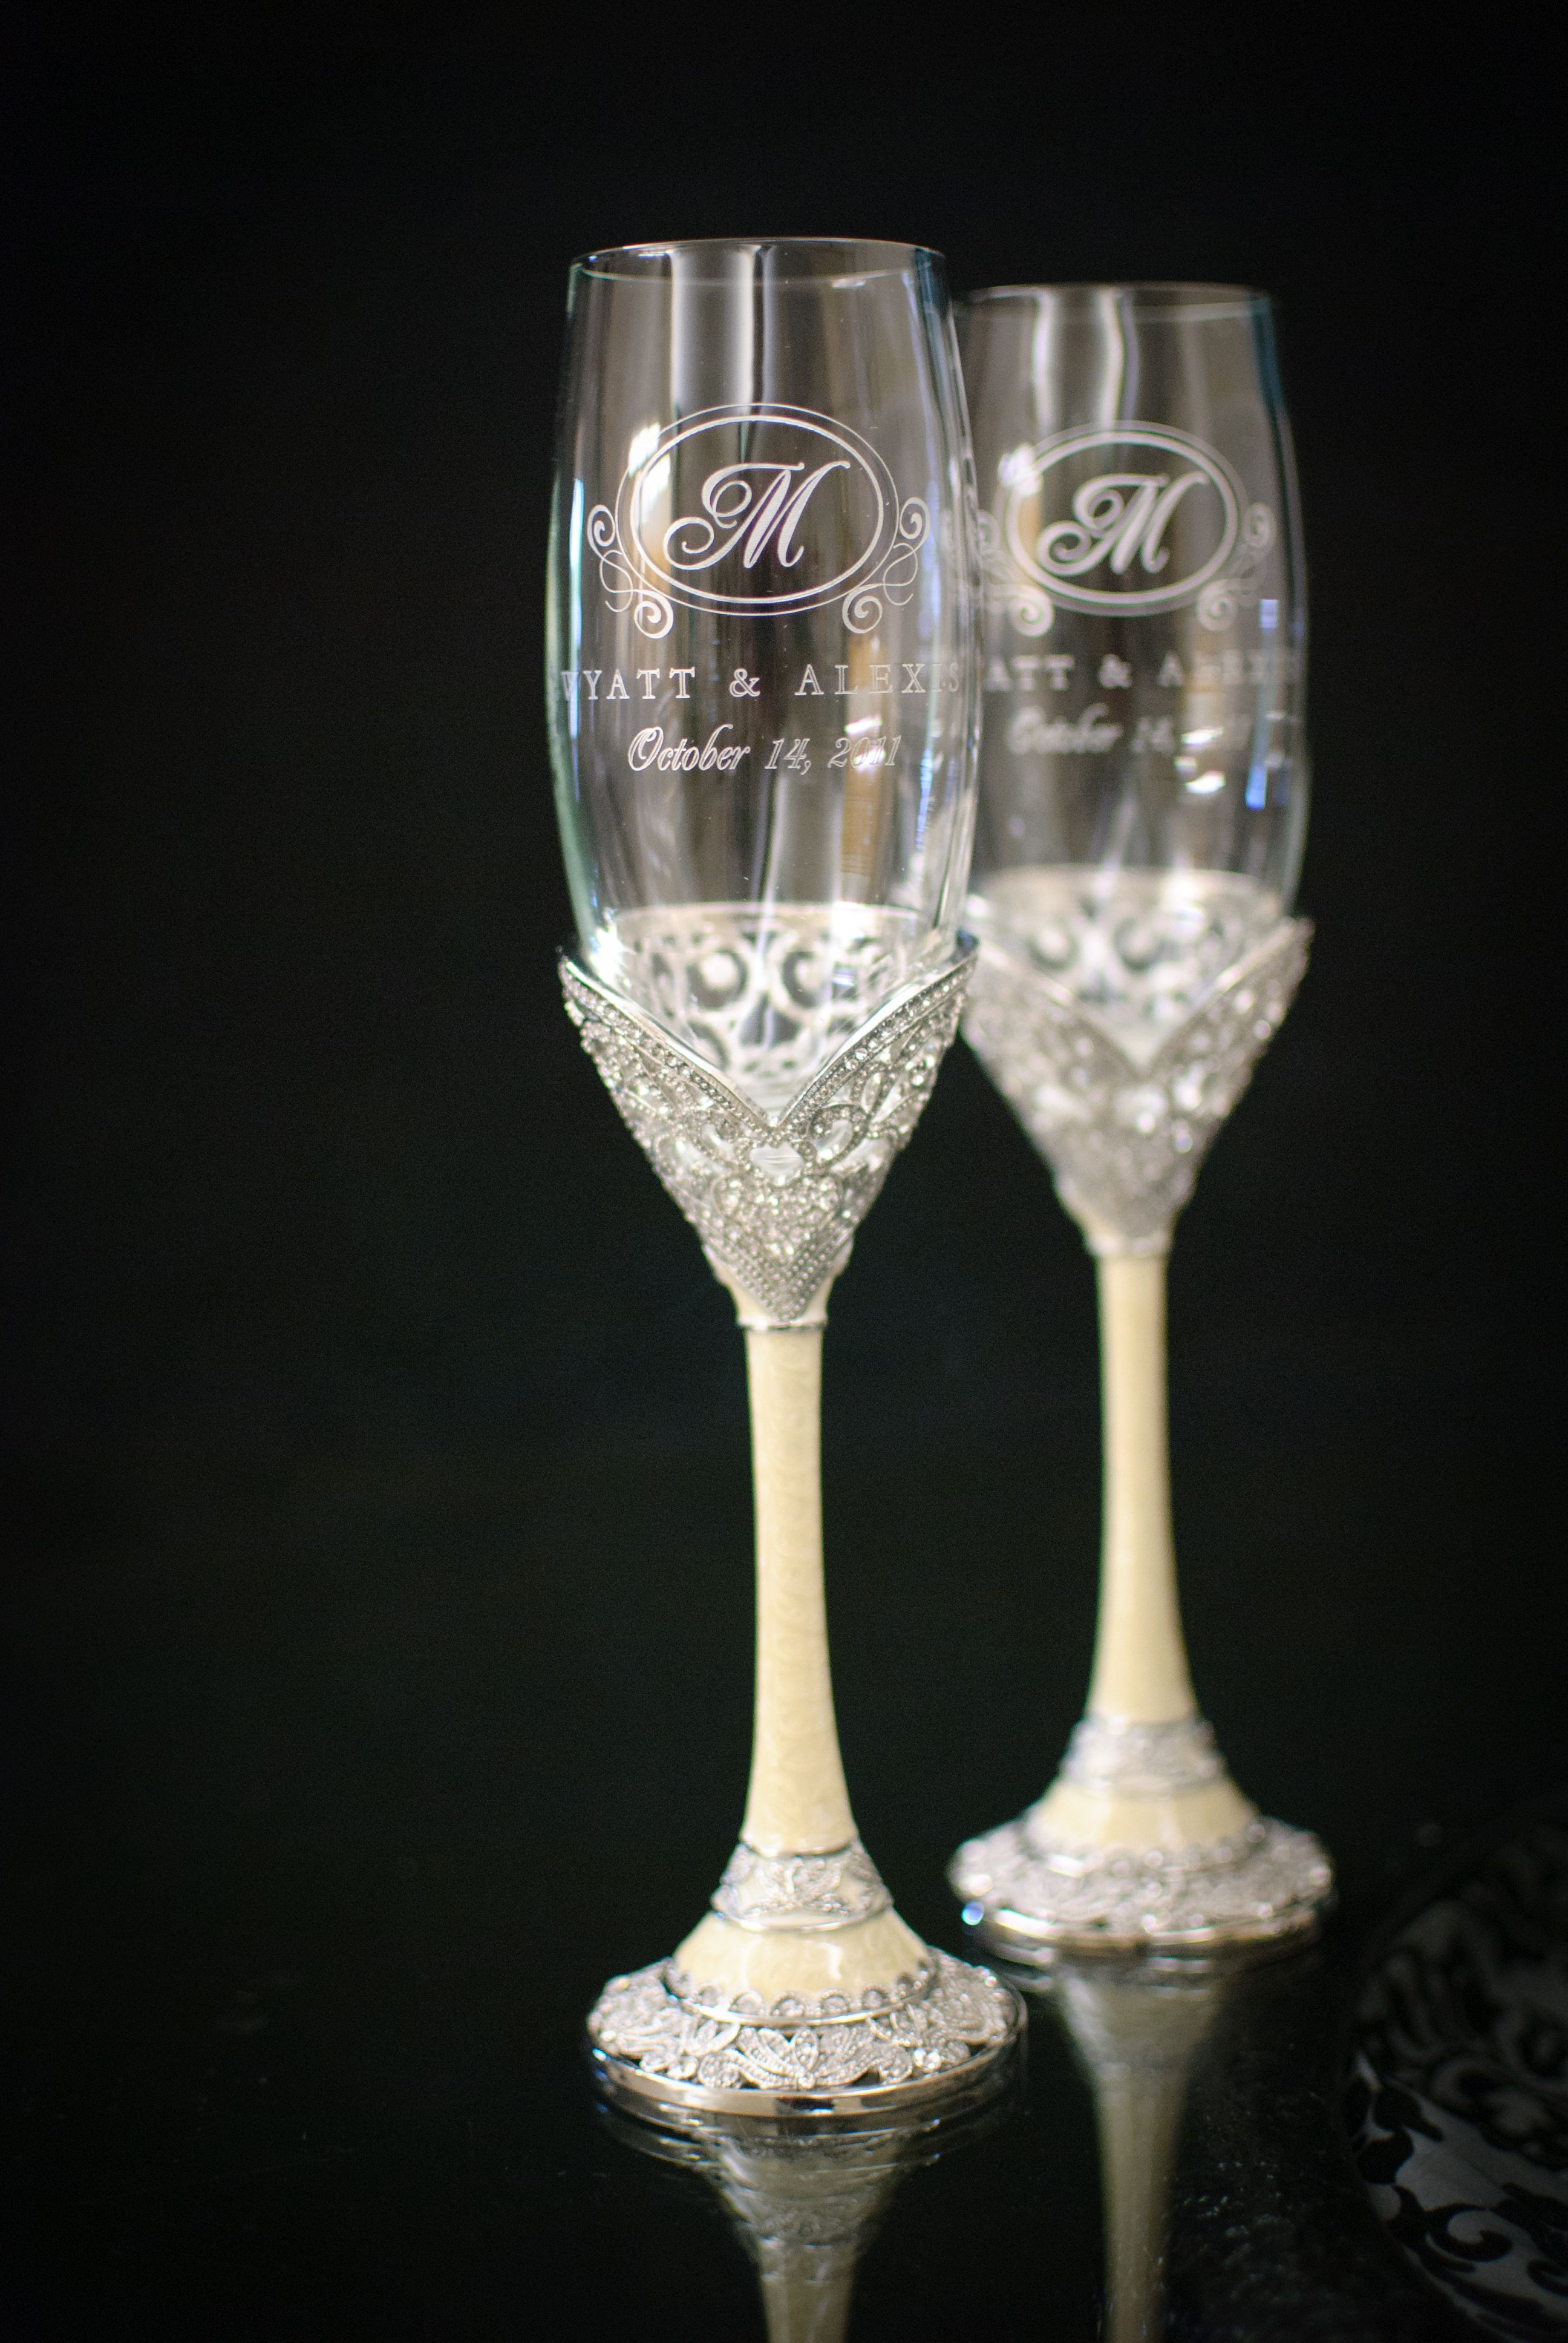 Things Remembered Wedding Gifts | Our Wedding Glasses From Things Remembered Just Me Pinterest